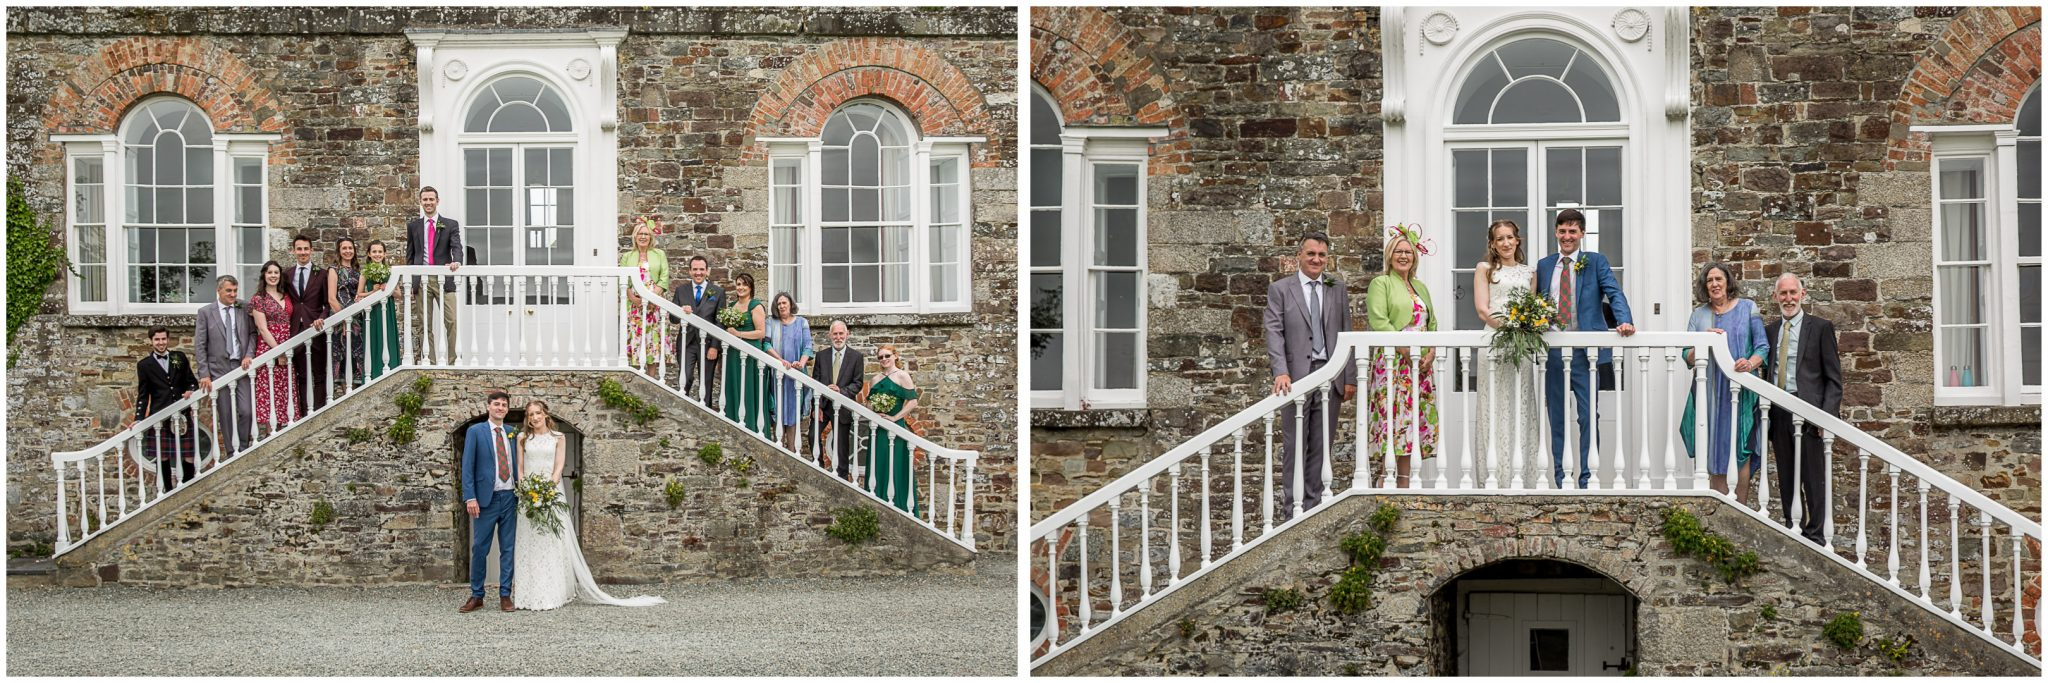 Formal group photos on steps outside main house at Bude wedding venue